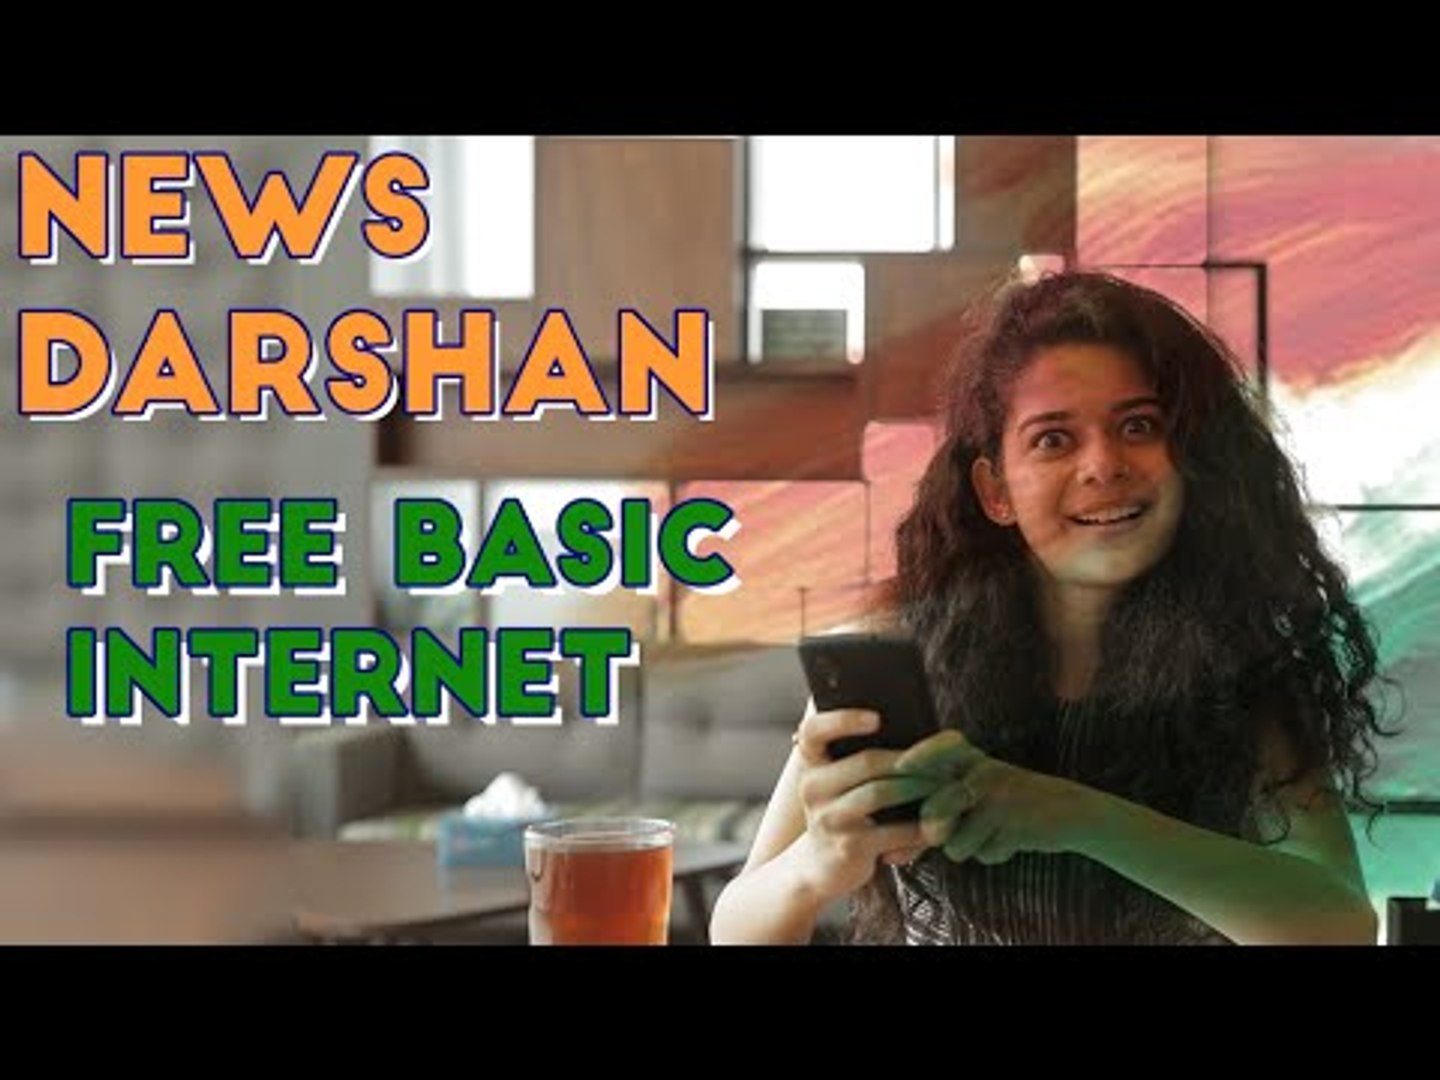 FilterCopy | News Darshan: Free Basic Internet - 2 Oct 2015